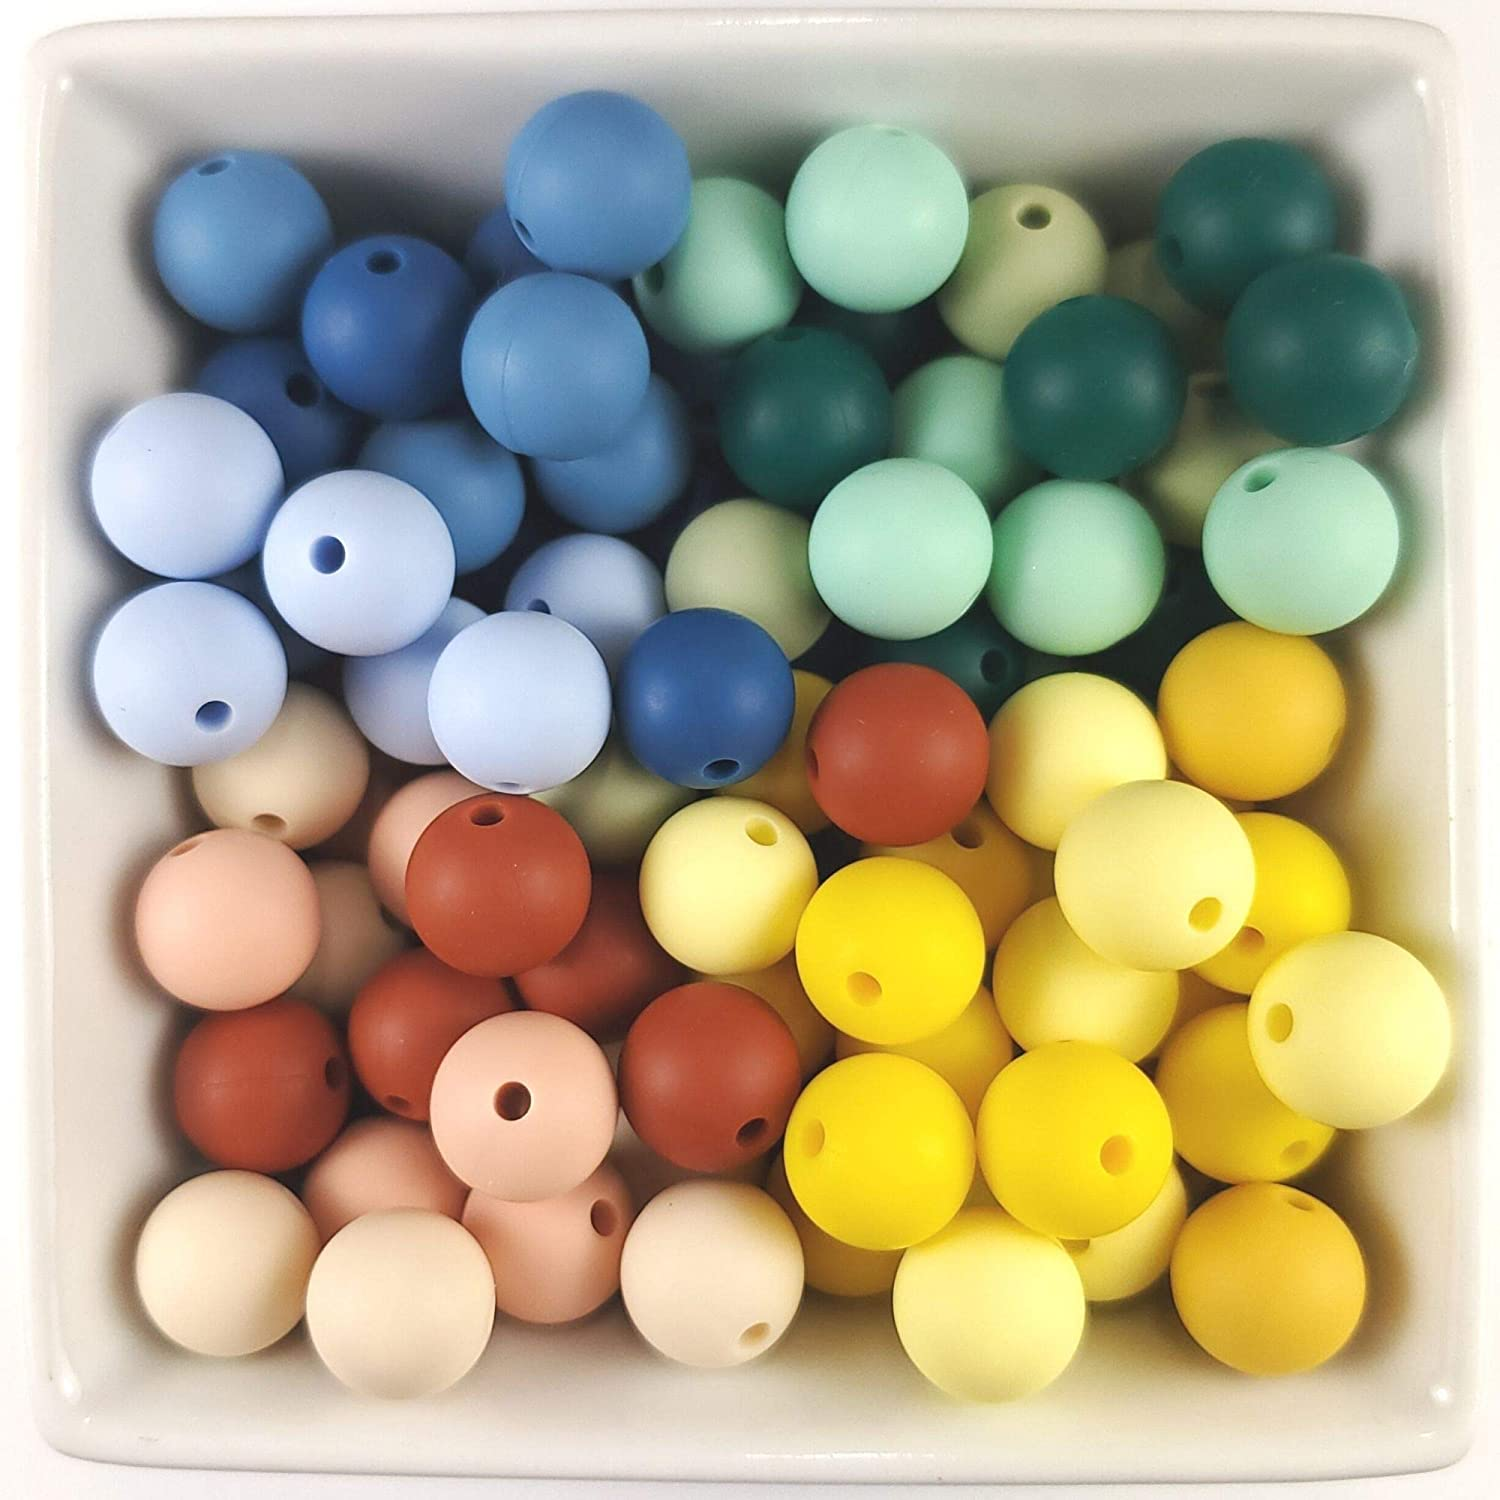 Silicone Beads - 100PC 12mm - Jewelry Necklace Bracelet Making Kit - Food Grade BPA Free Arts and Crafts Supplies (100PC Three Tone)